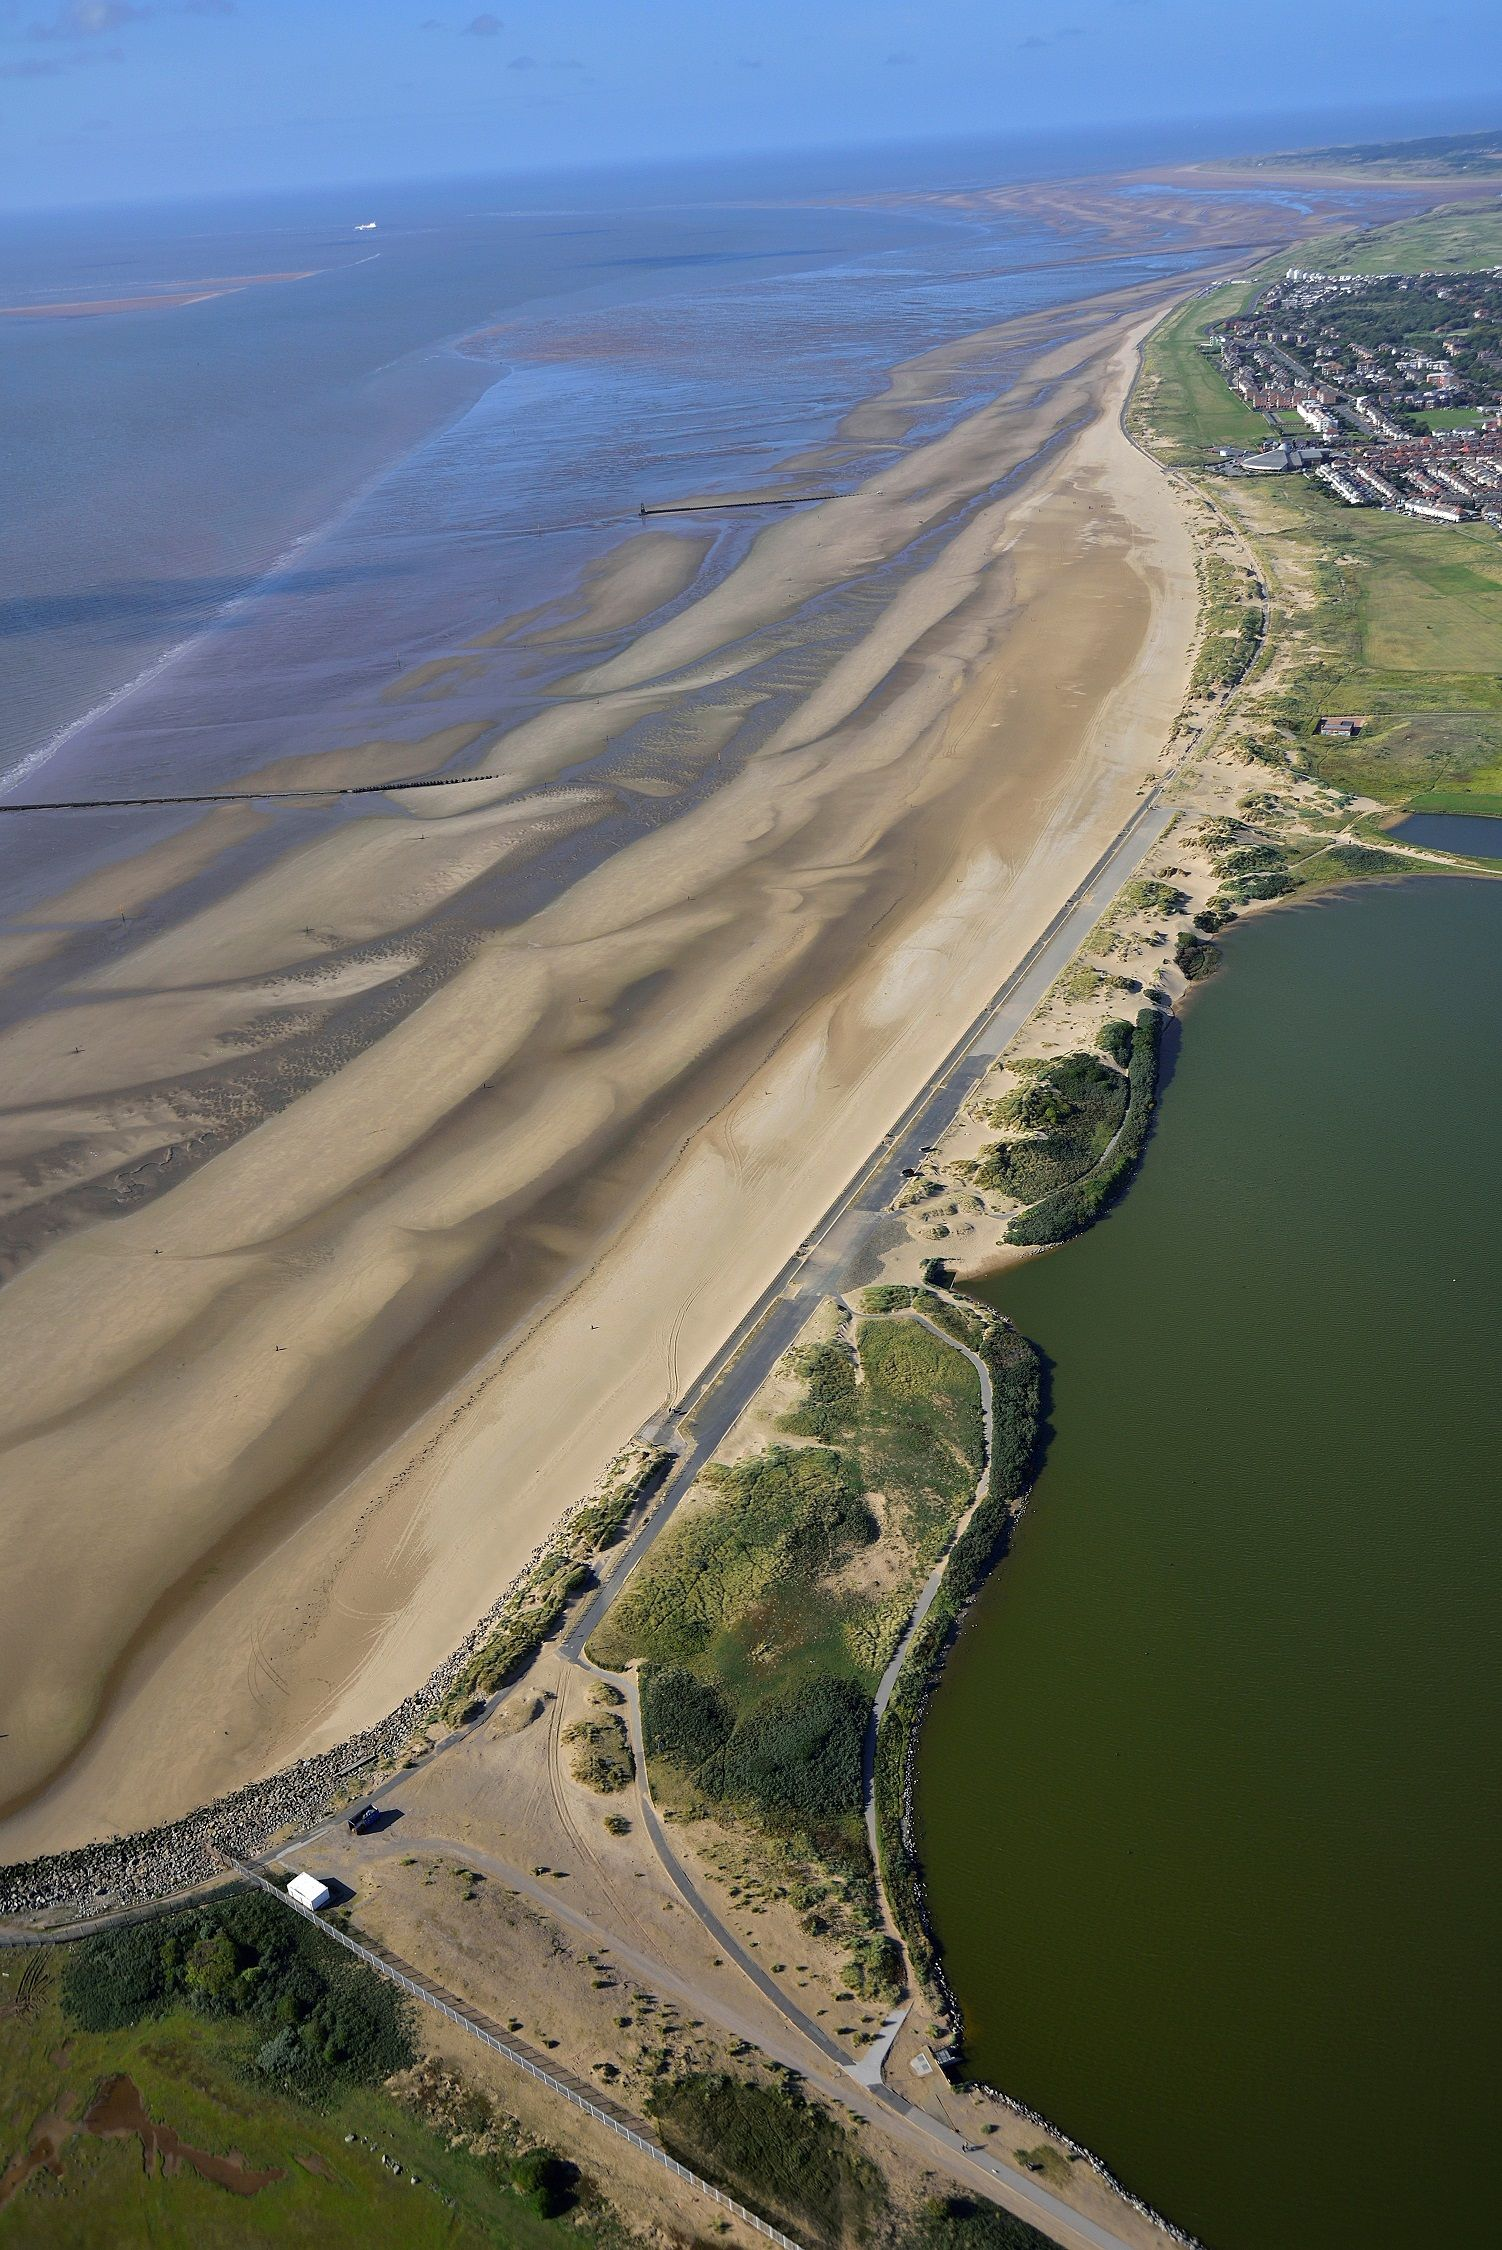 Plans to be put in place to reduce chances of flooding and coastal erosion